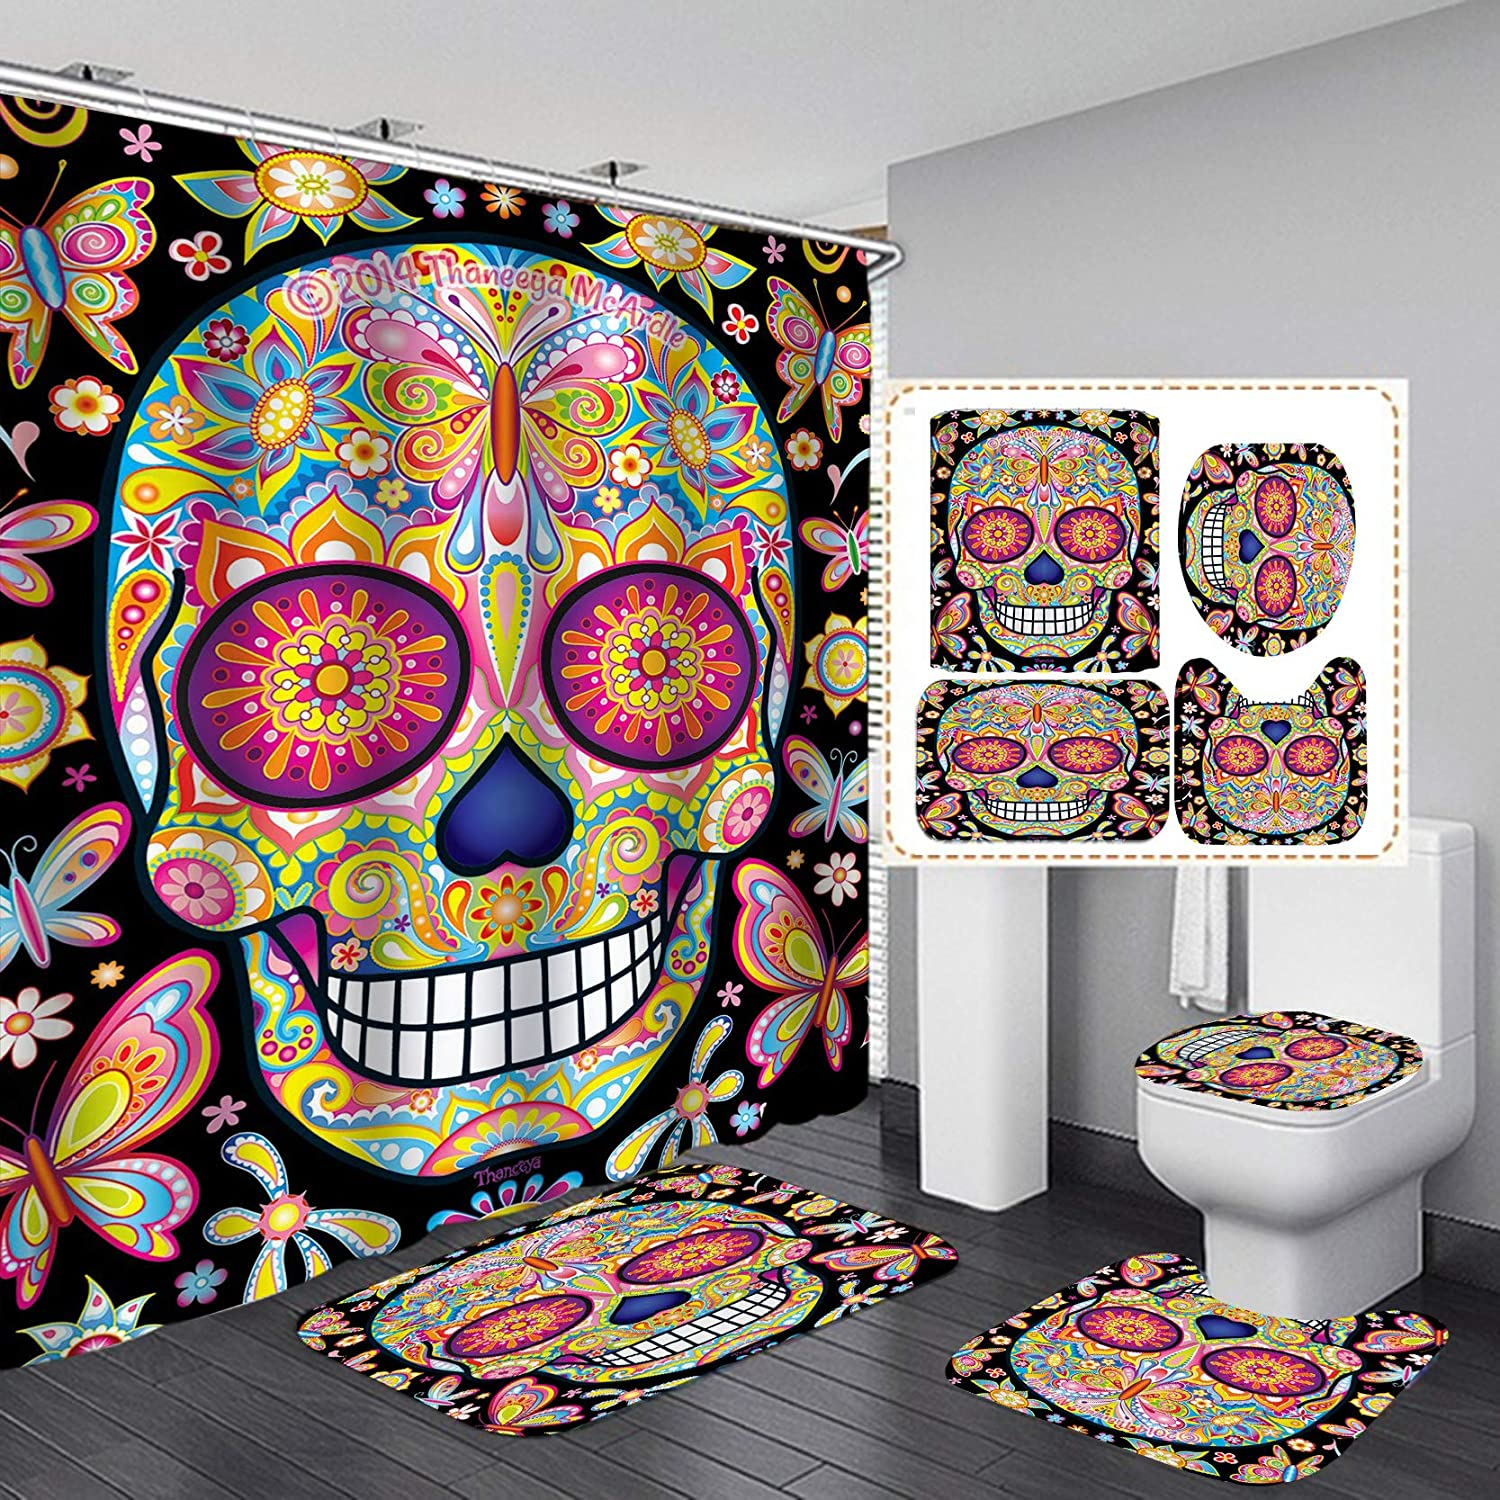 Skull Shower Recommended Curtain Set 4PCS Non-Slip Lid Cover an Max 74% OFF Toilet Rugs